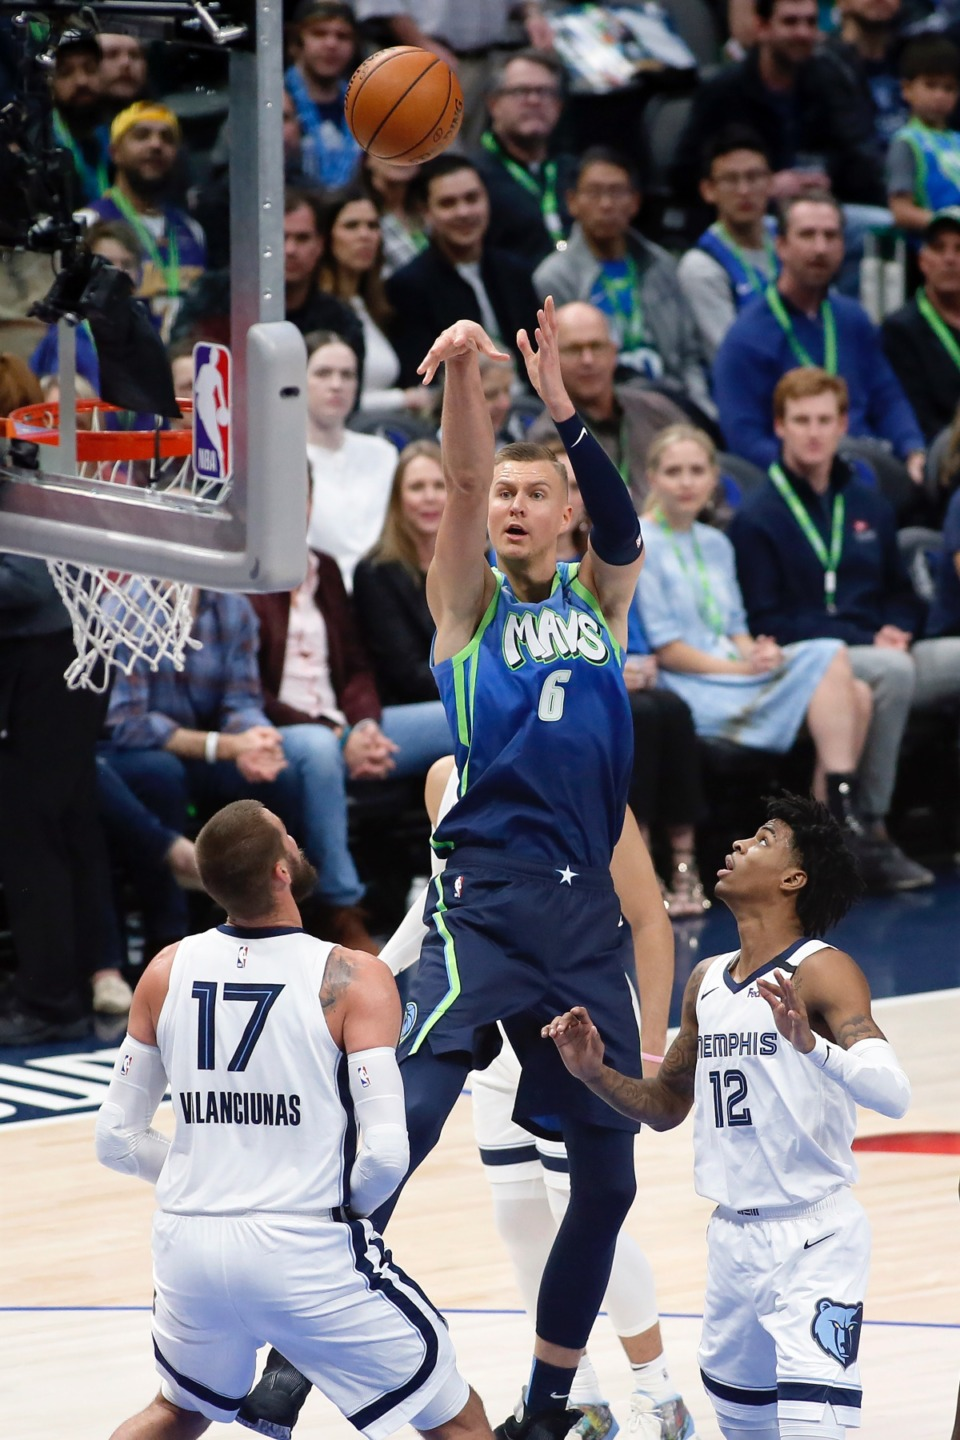 <strong>Dallas Mavericks forward Kristaps Porzingis (6) shoots the three-point basket over Memphis Grizzlies center Jonas Valanciunas (17) and guard Ja Morant (12) during the first half of an NBA basketball game in Dallas, Friday, March 6, 2020.</strong> (AP Photo/Ray Carlin)